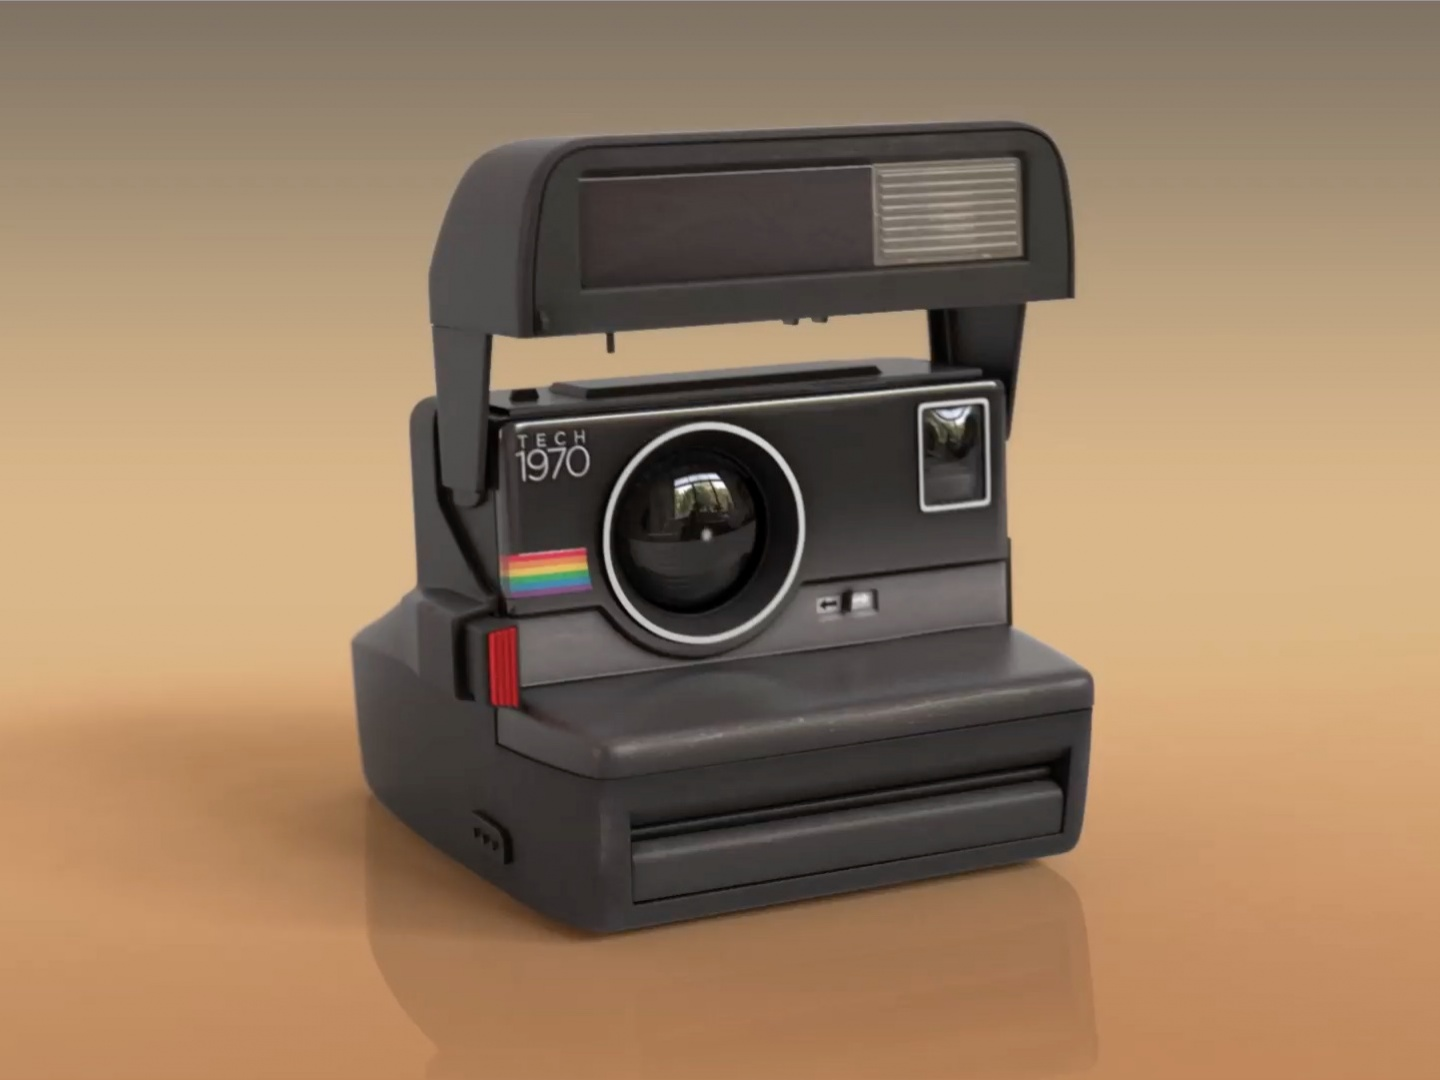 The Instant camera with Type 2 diabetes Thumbnail